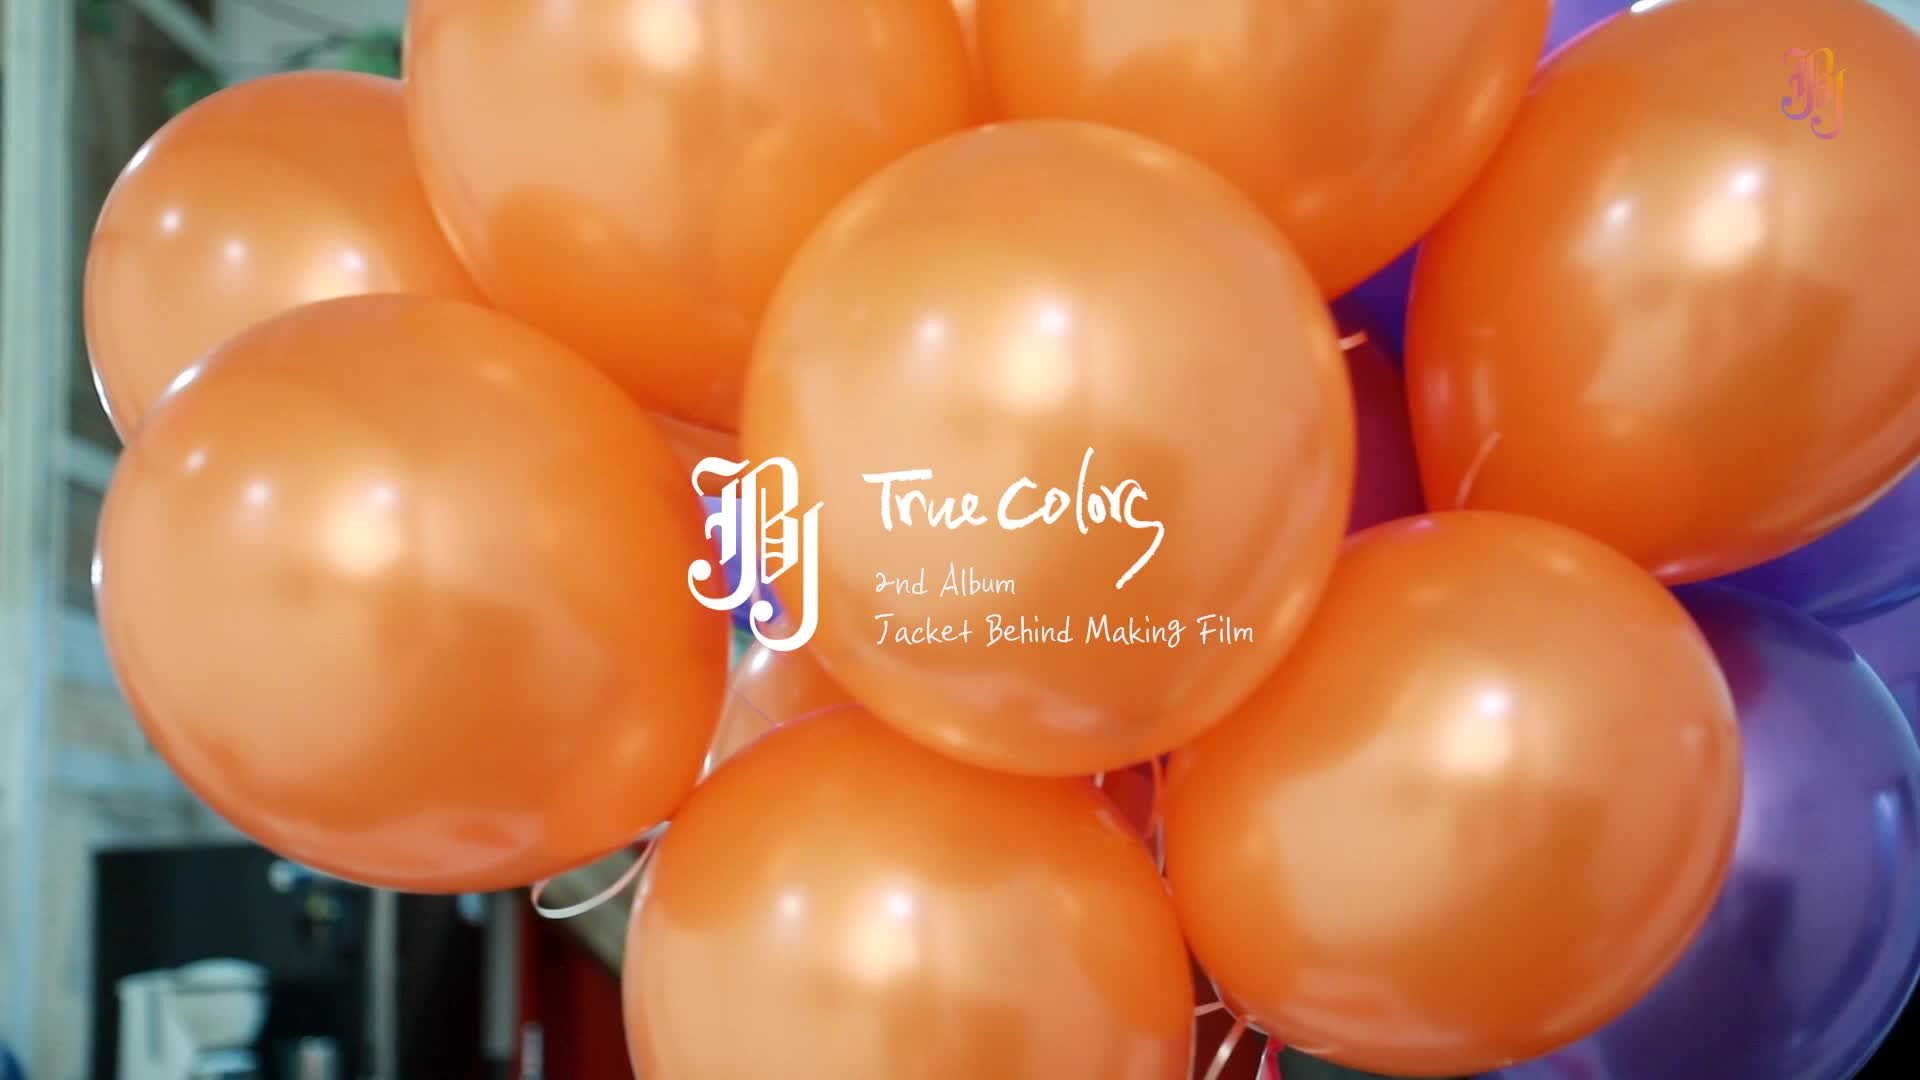 JBJ - 'True Colors' Jacket Making Film